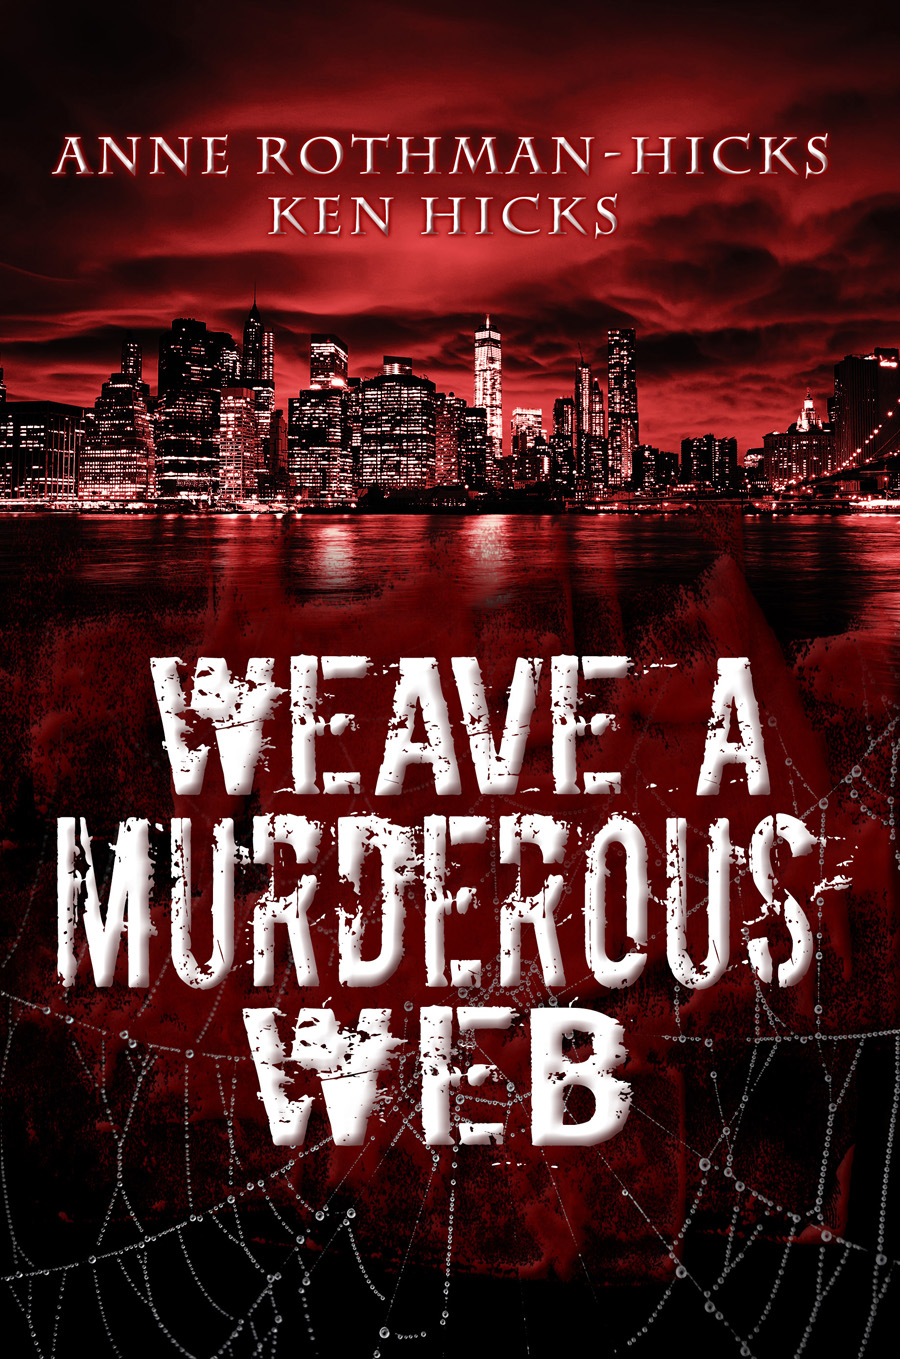 Weave A Murderous Web Is A Mystery Novel By Anne Rothmanhicks And Kenneth  Hicks It Is One Of Three Books In The Jane Larson Series, Published By  Melange